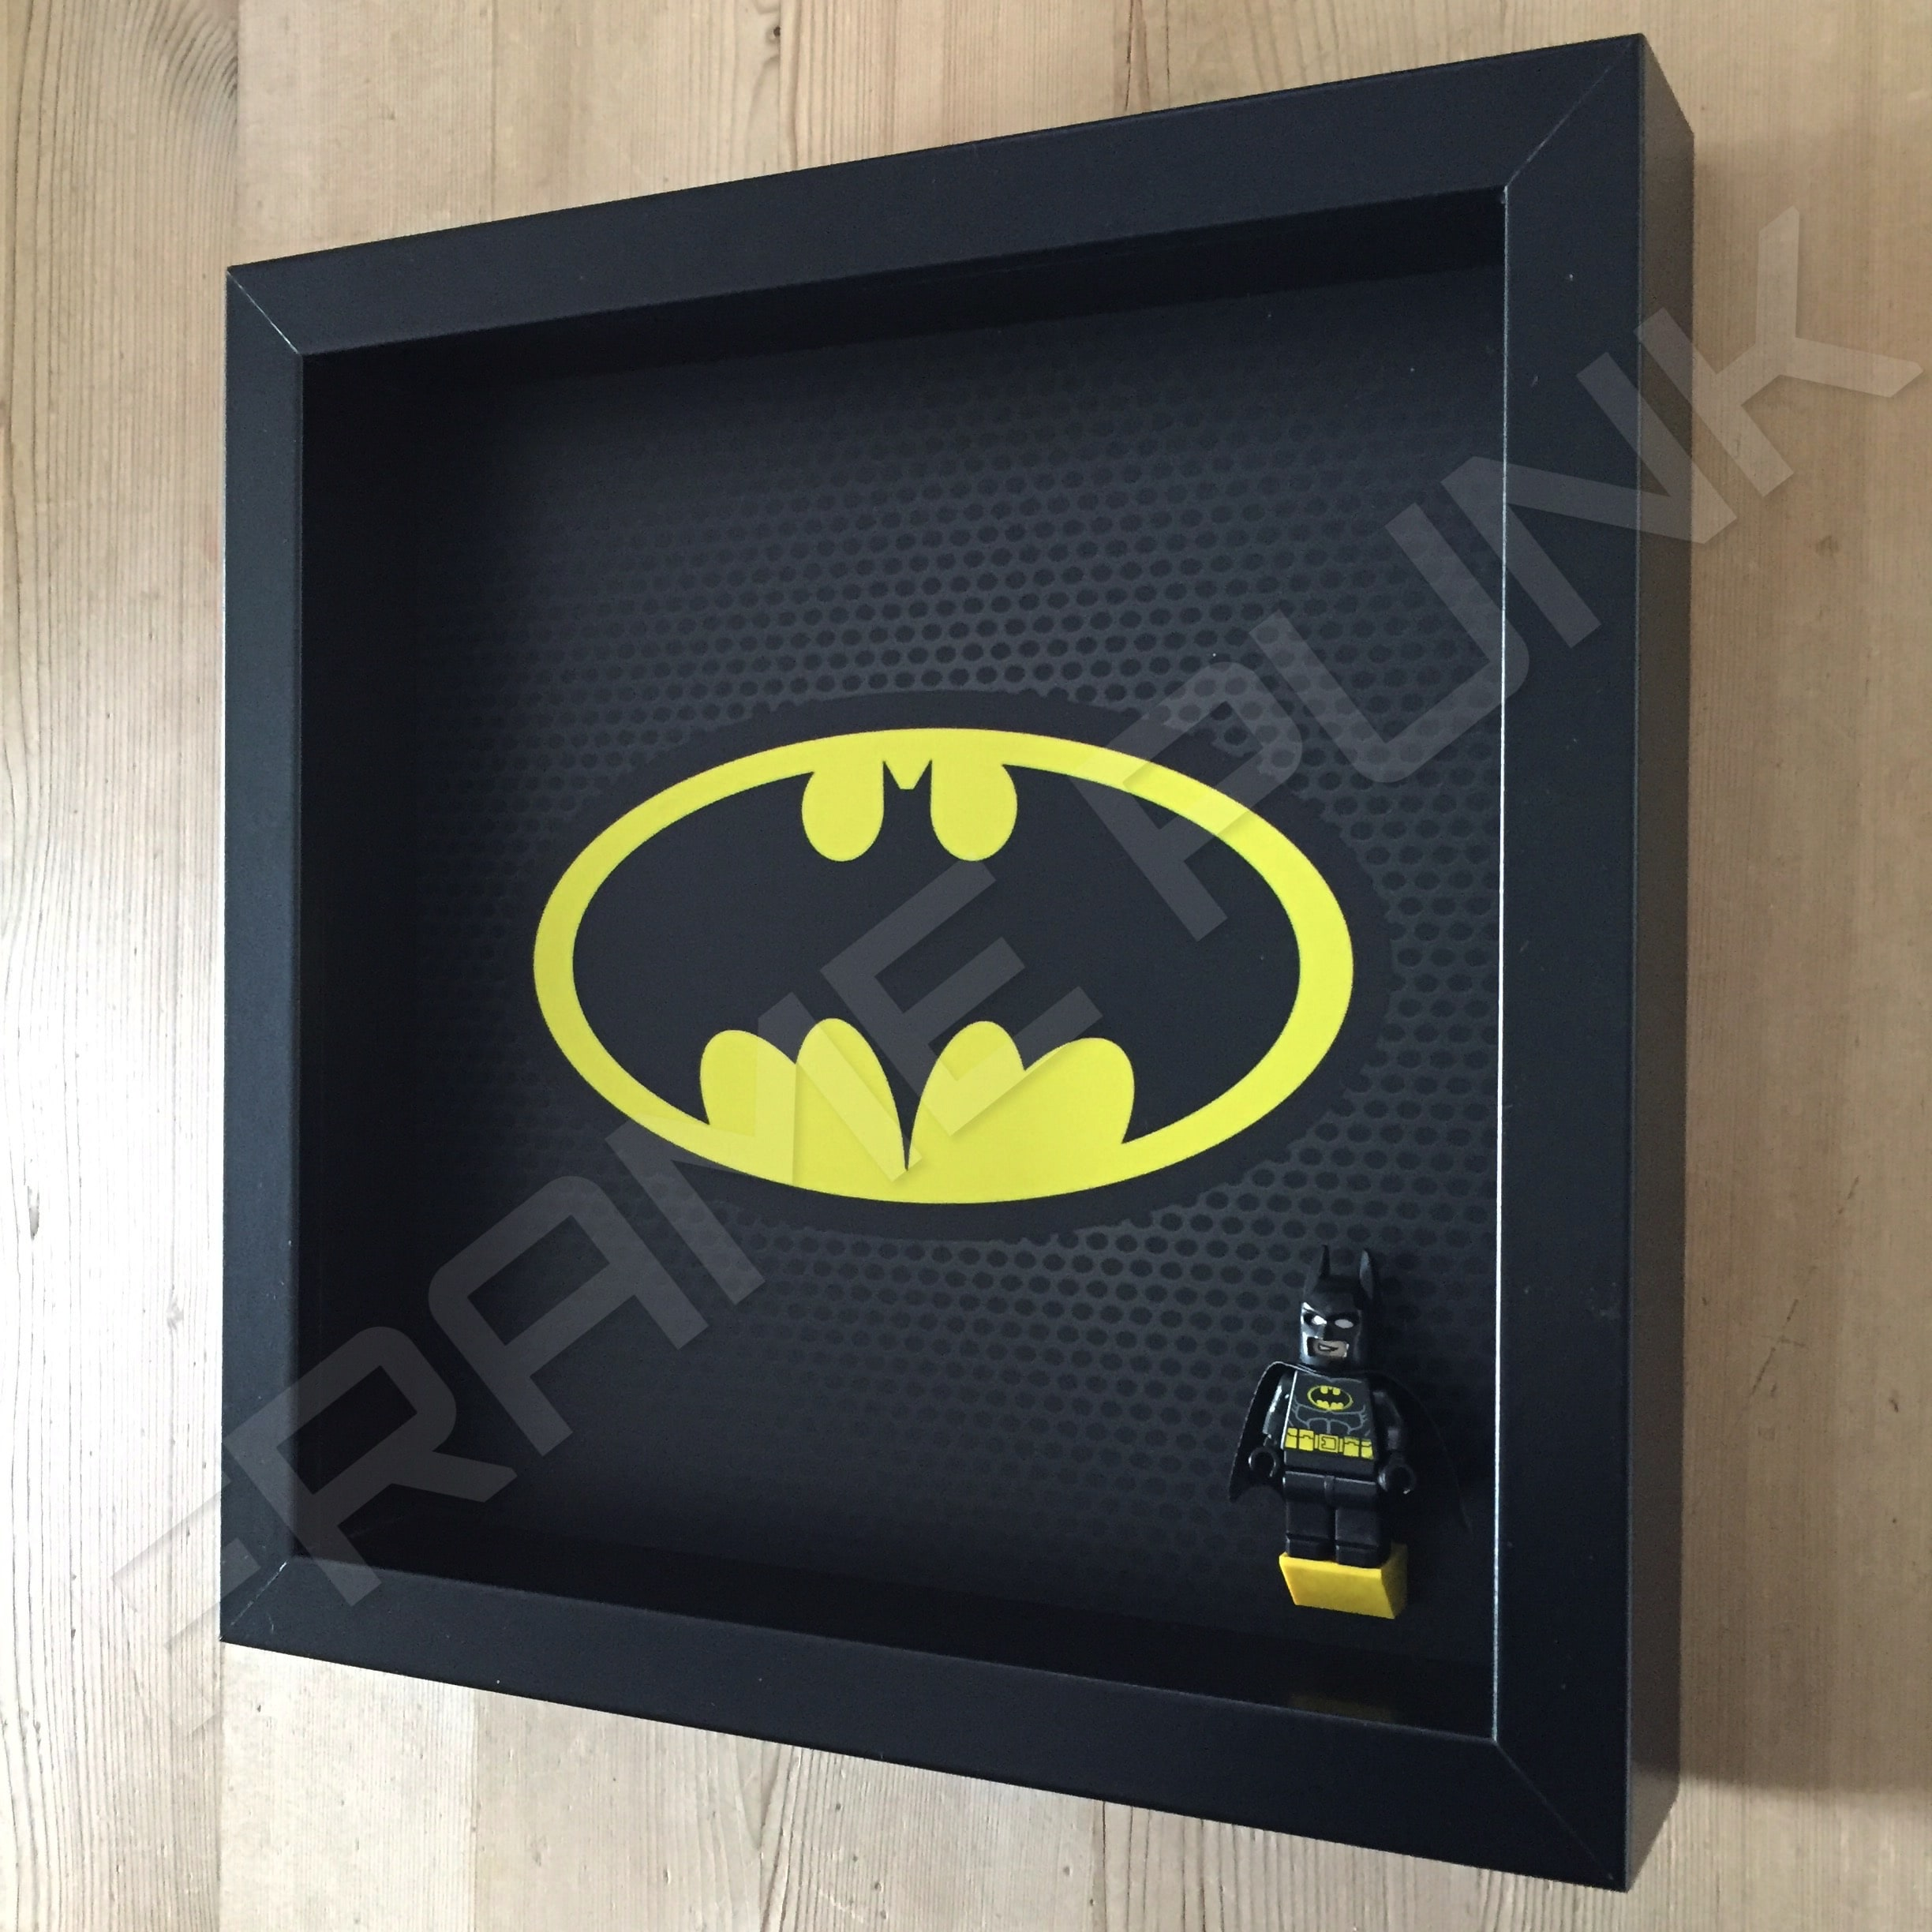 classic lego batman minifigure display frame with minifigure side view